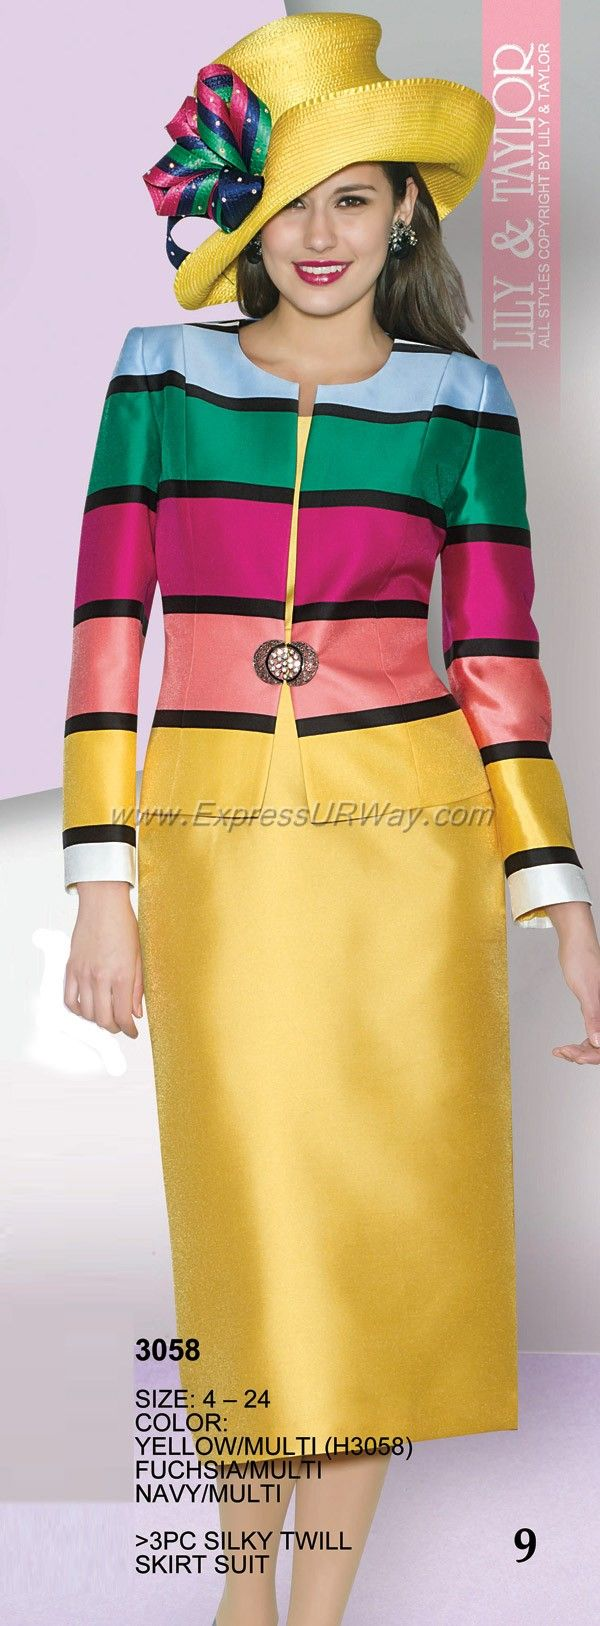 Mode Collection by Lily and Taylor for Spring 2014 - www.ExpressURWay.com - Lily…